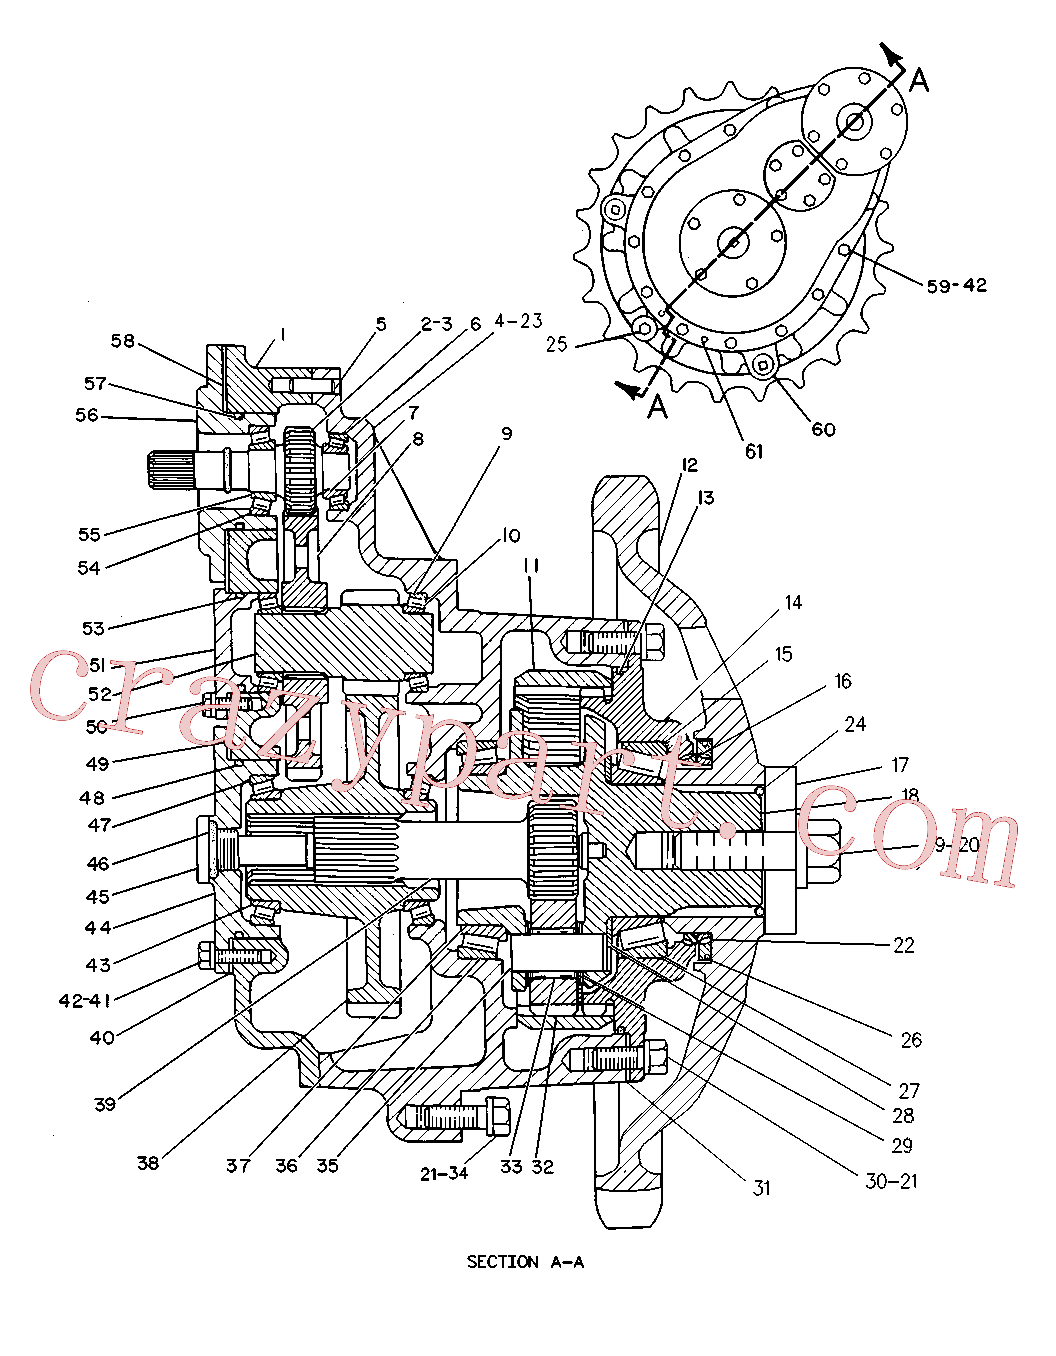 CAT 6A-7534 for 215B Excavator(EXC) power train 8V-5917 Assembly